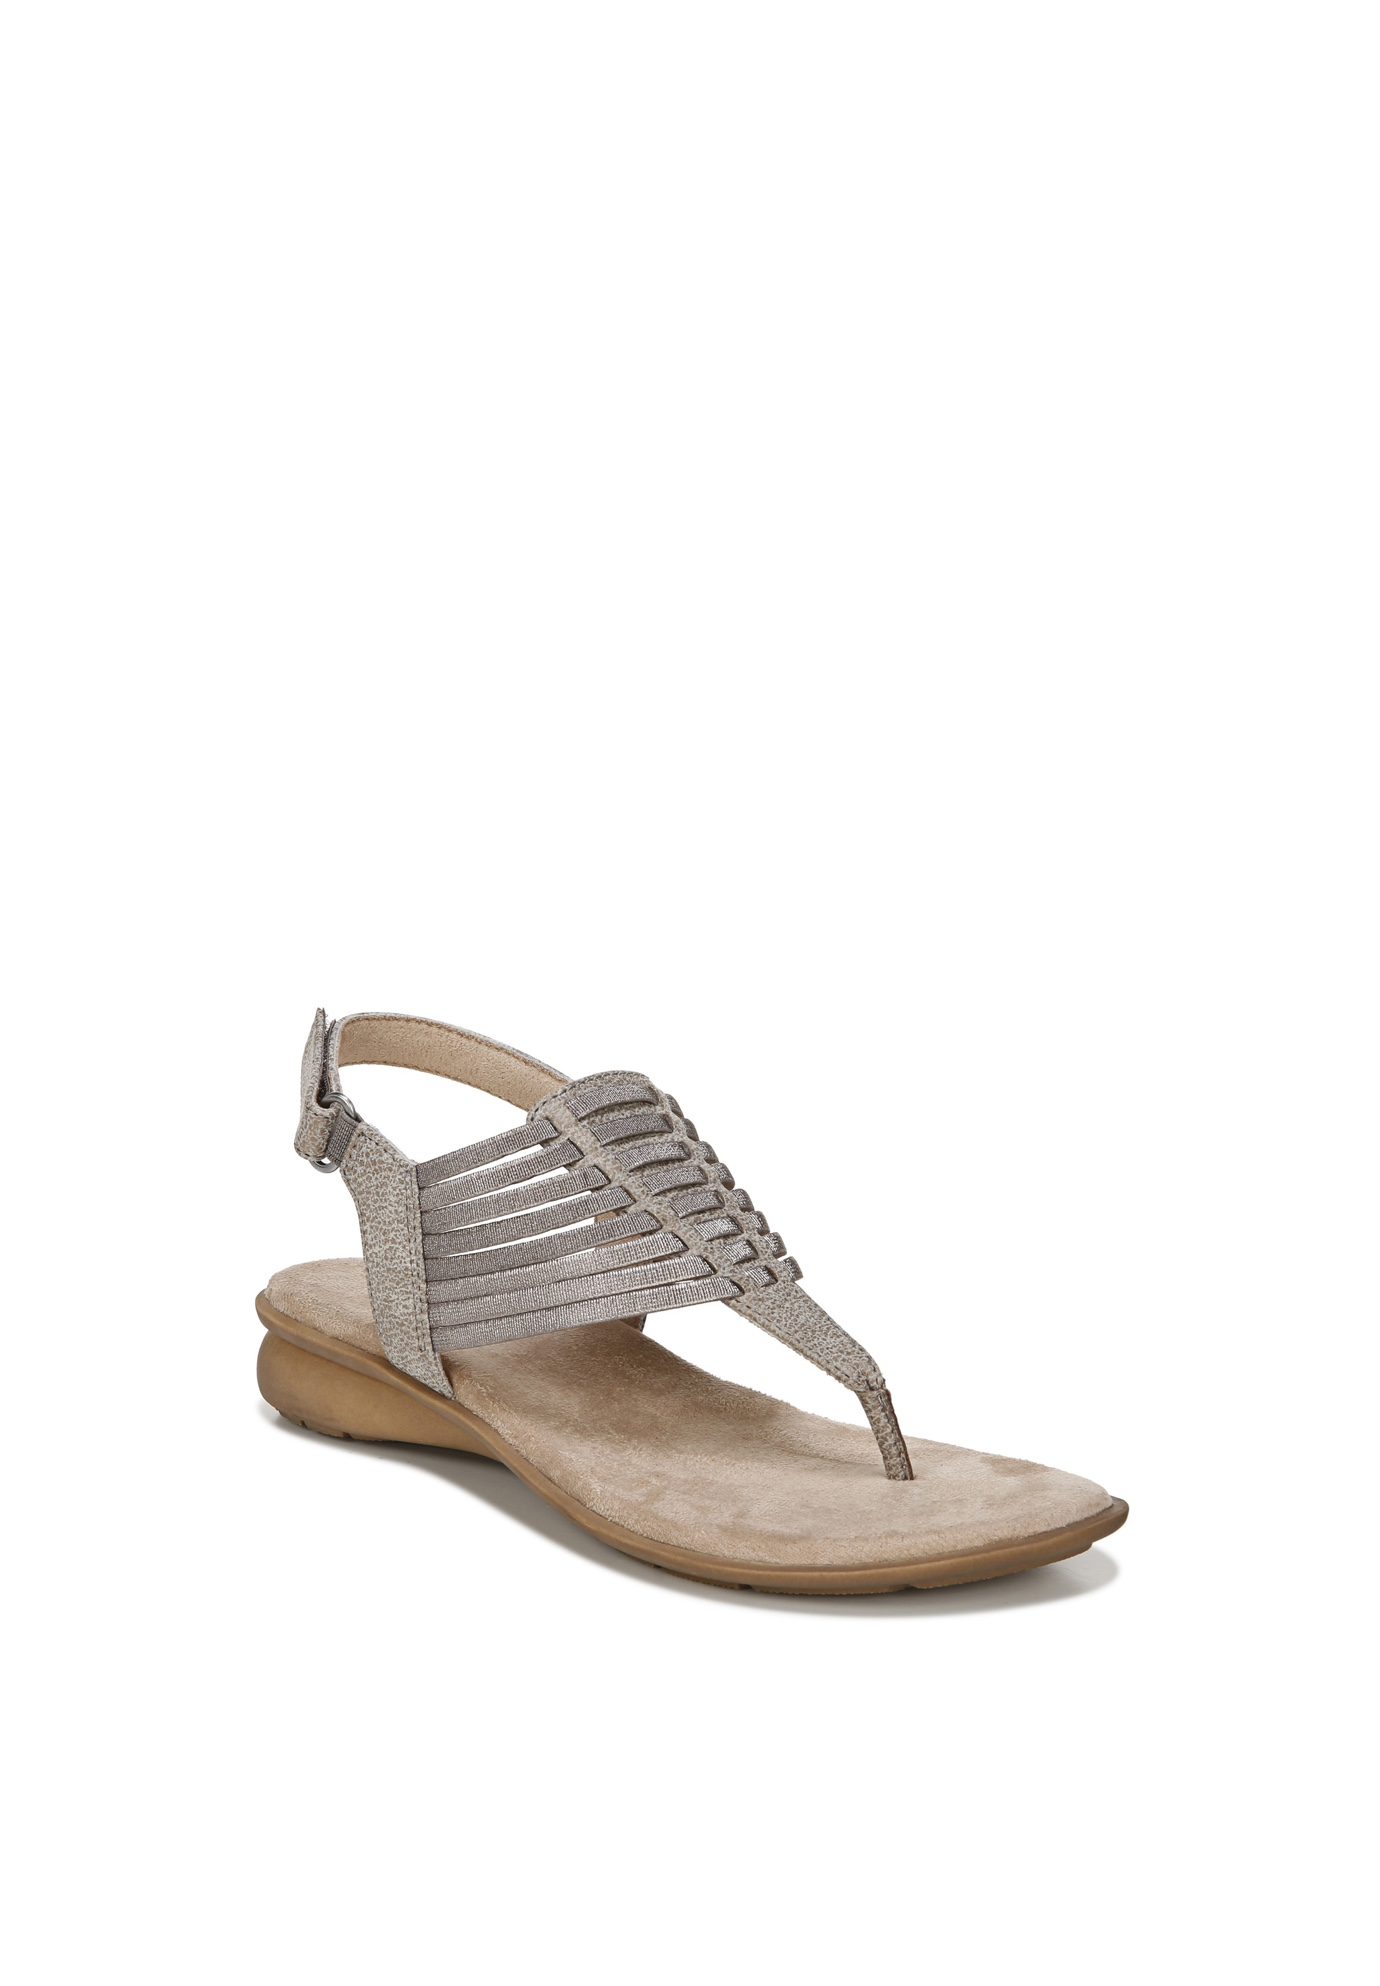 Jette Sandal by SOUL Naturalizer,